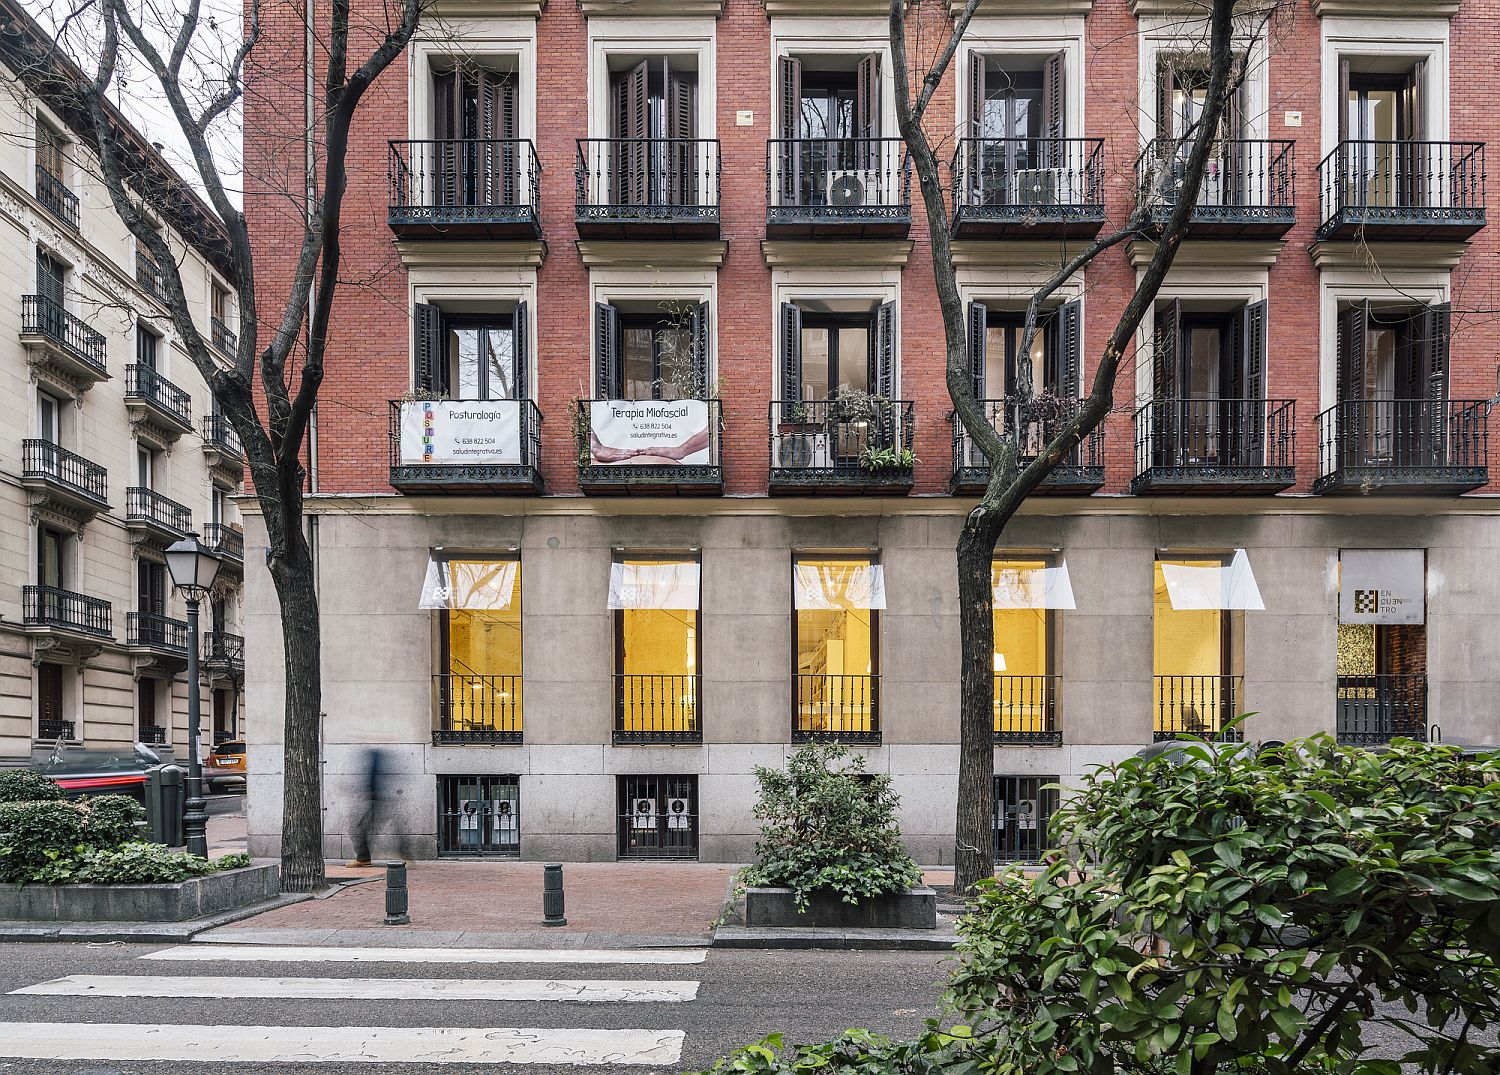 1562236172 410 amazing use of yellow for office interior meeting space in madrid - Amazing Use of Yellow for Office Interior: Meeting Space in Madrid